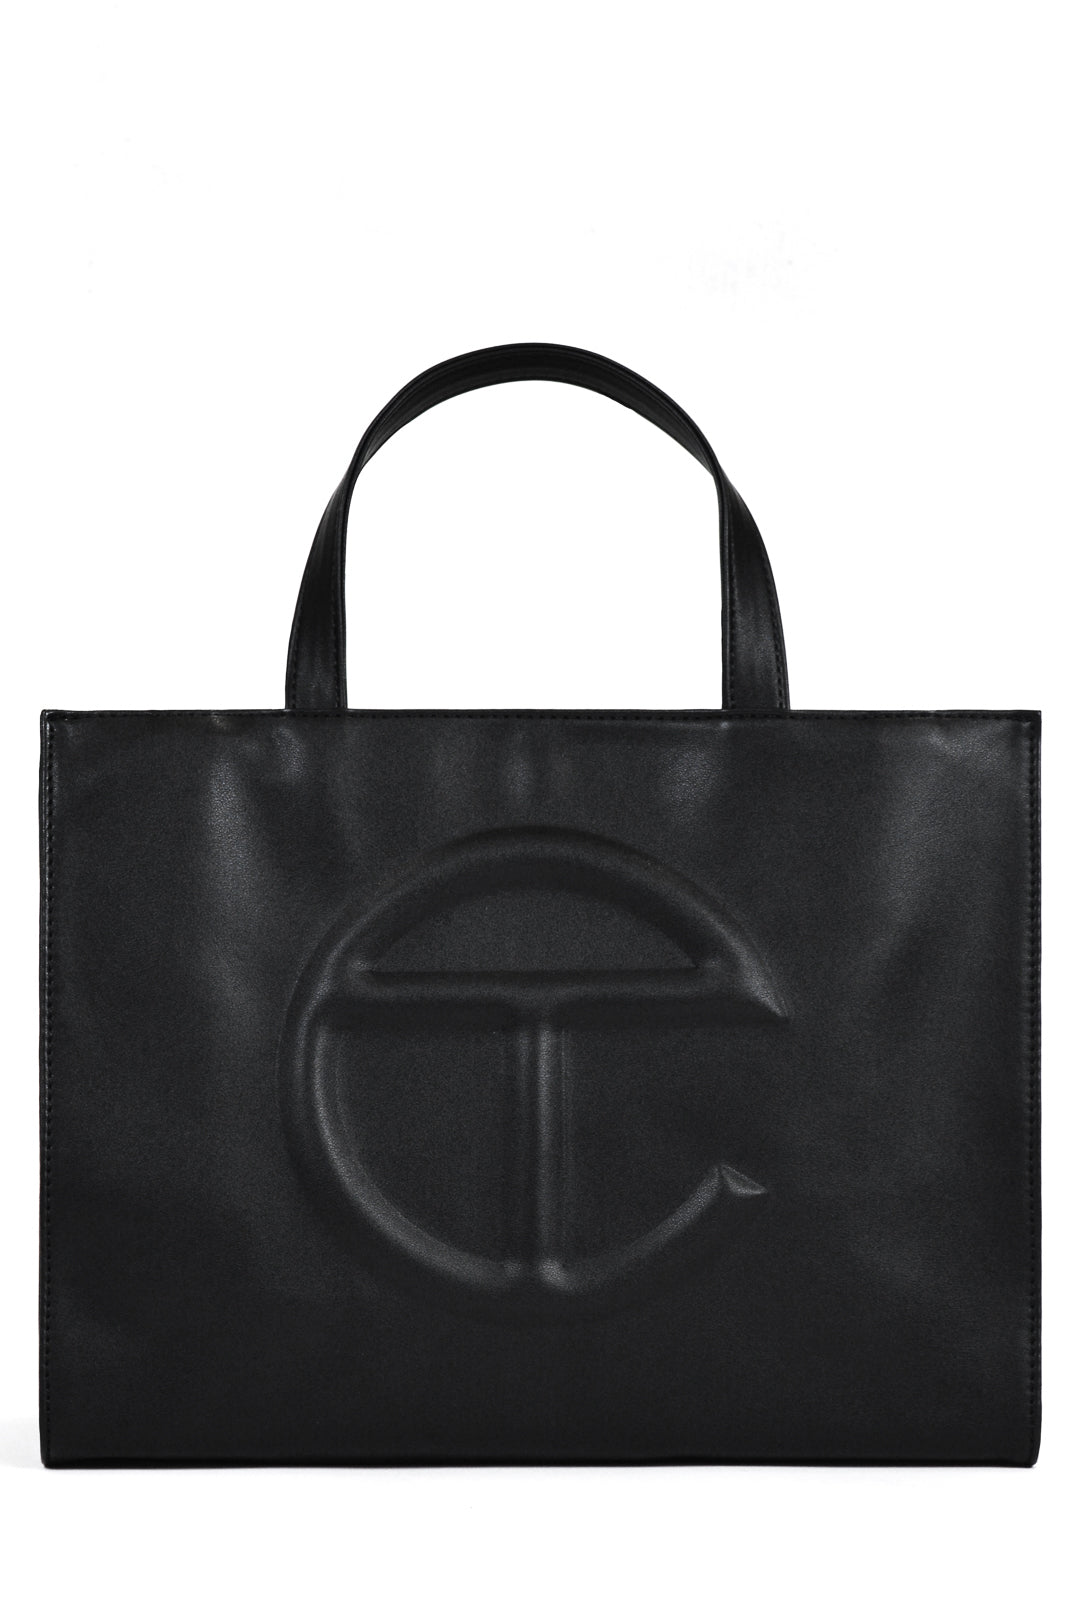 Telfar Shopping Bag, Medium